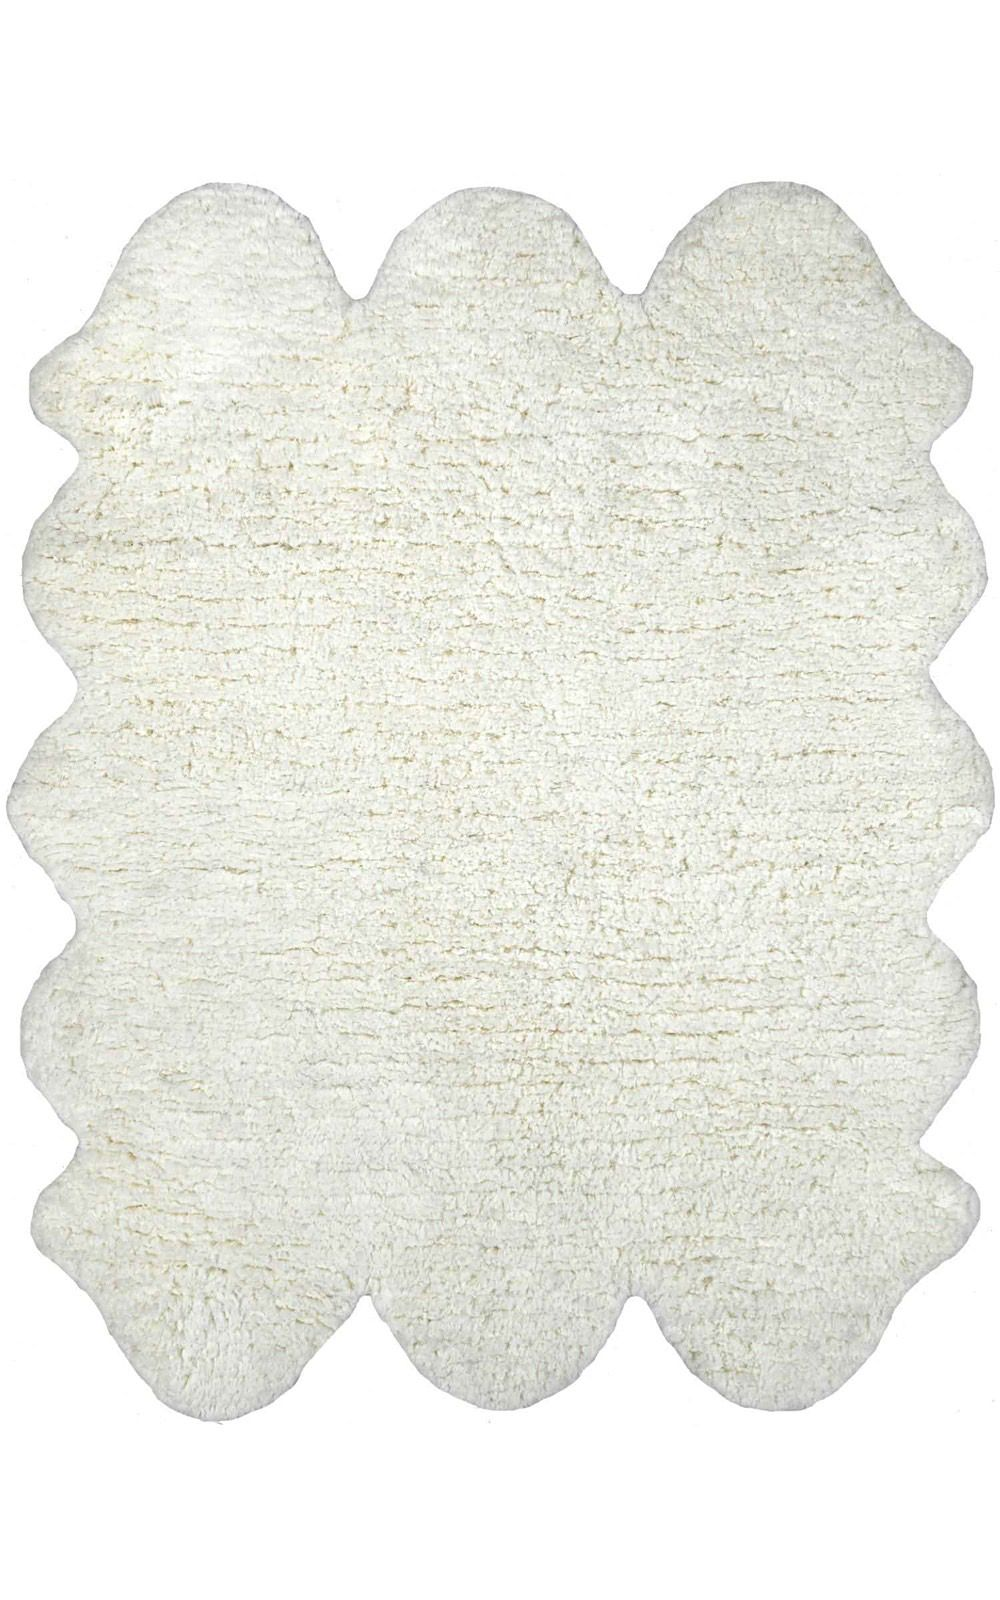 nuloom sexto pelt faux sheepskin animal inspirations area rug collection